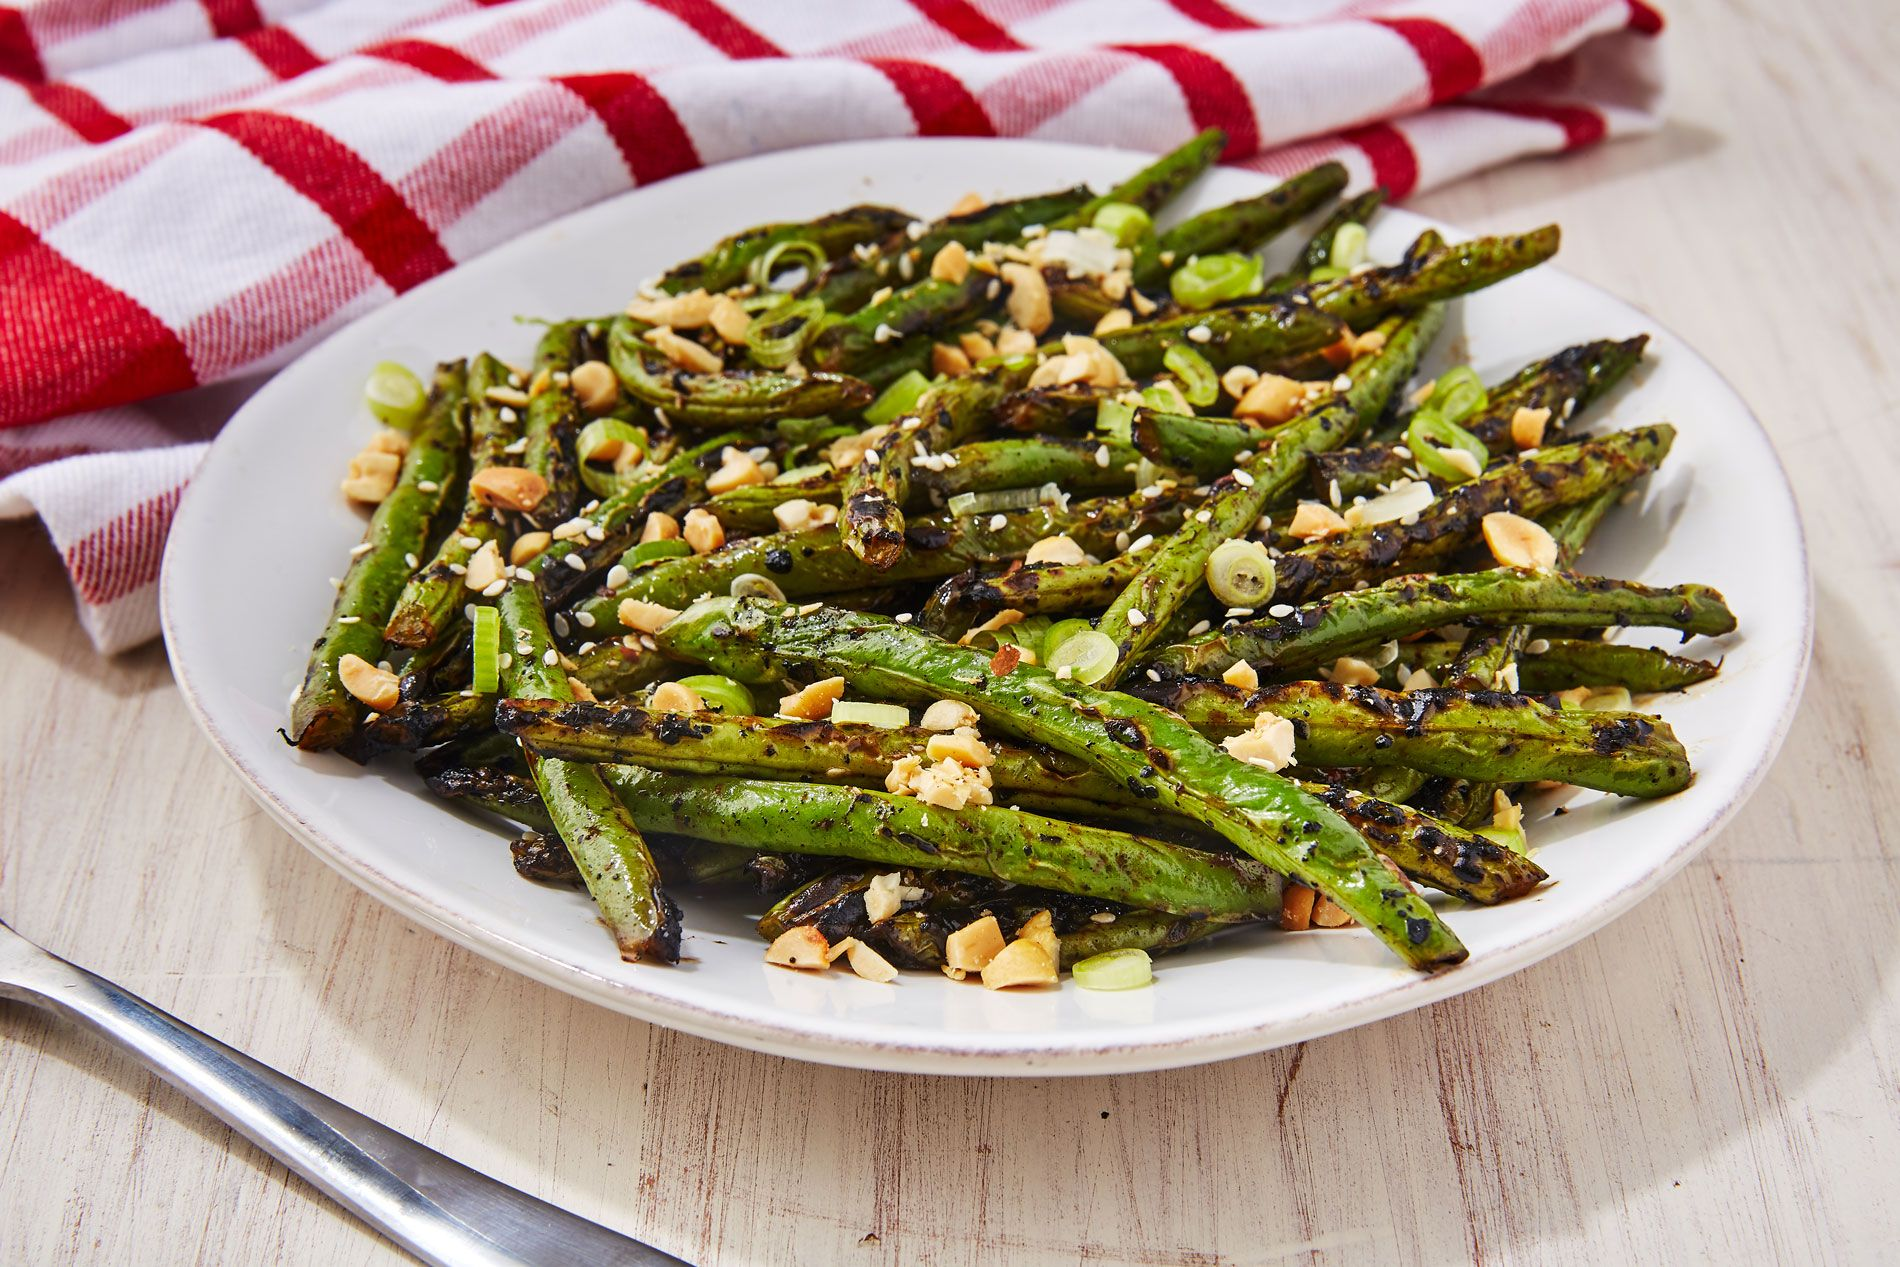 Best Grilled Green Beans Recipe How To Make Grilled Green Beans